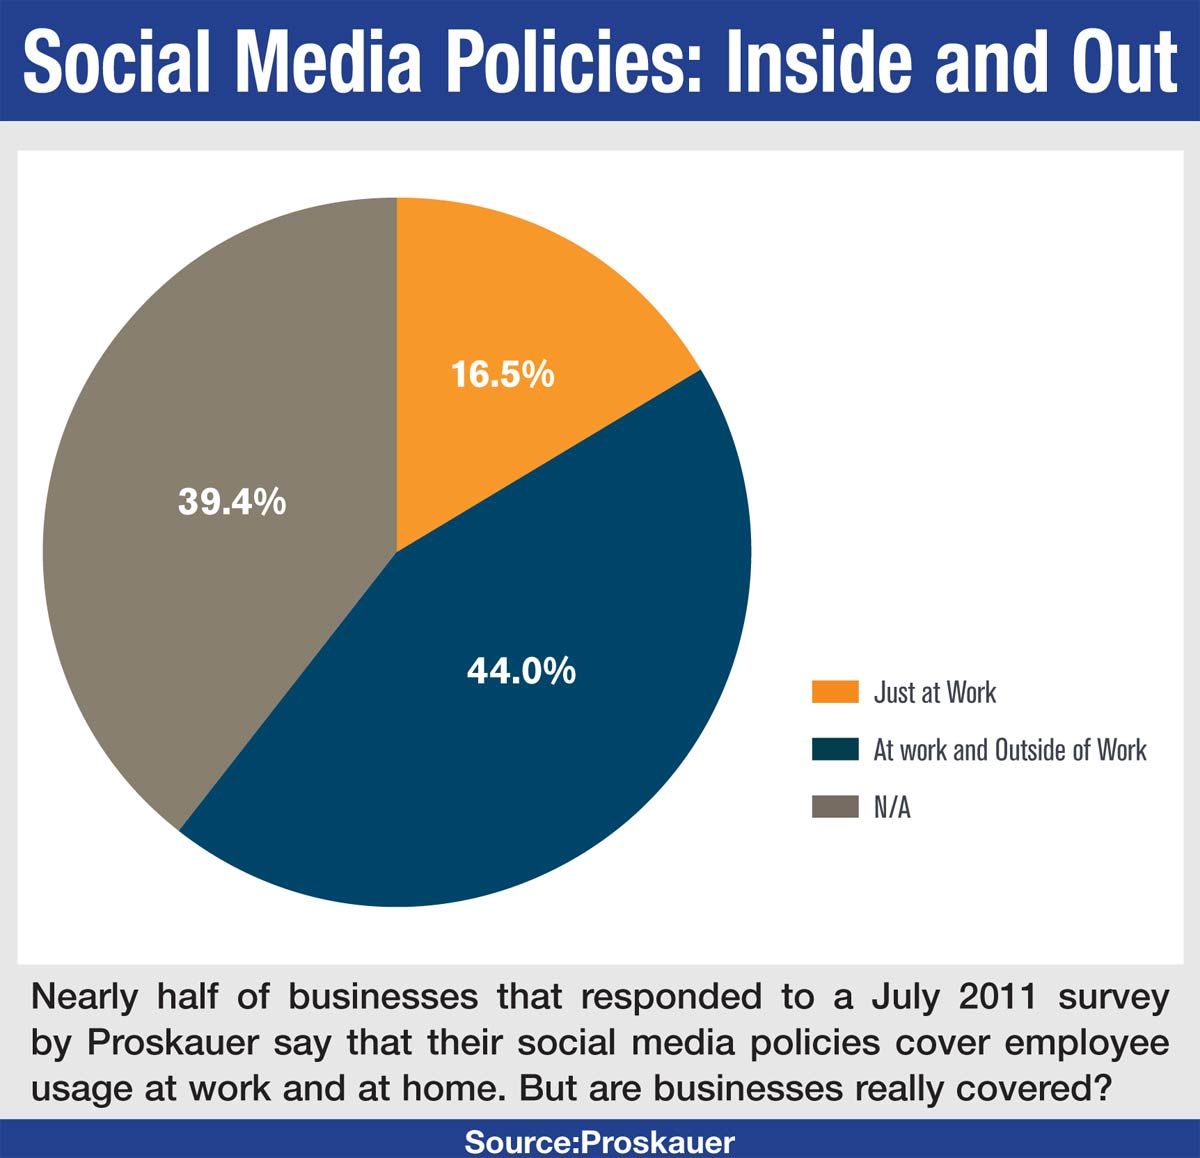 social media the problem of the Buffer surveyed over 1,200 marketing professionals to create the state of social - a guide to navigating what's coming up next in the social media world.